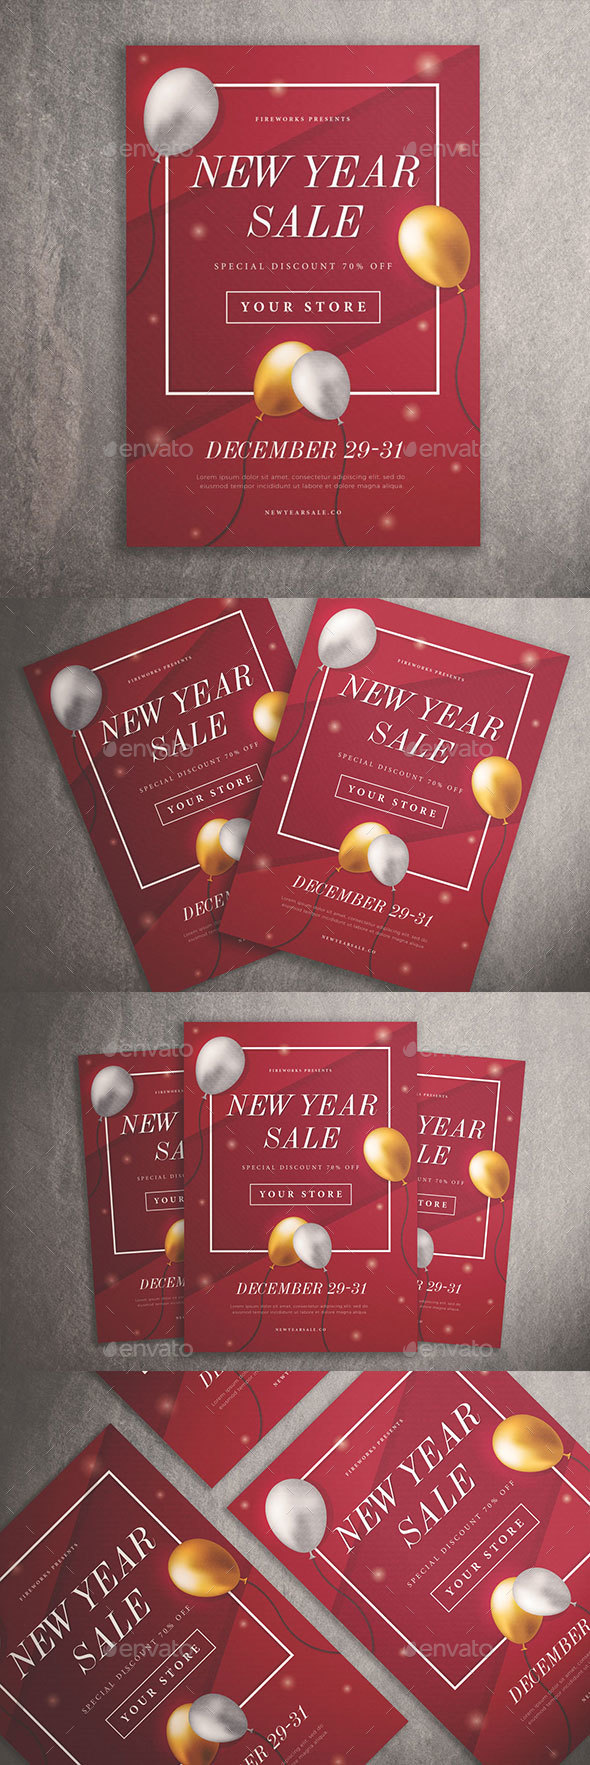 New Year Sale Flyer Vol. 01 - Commerce Flyers